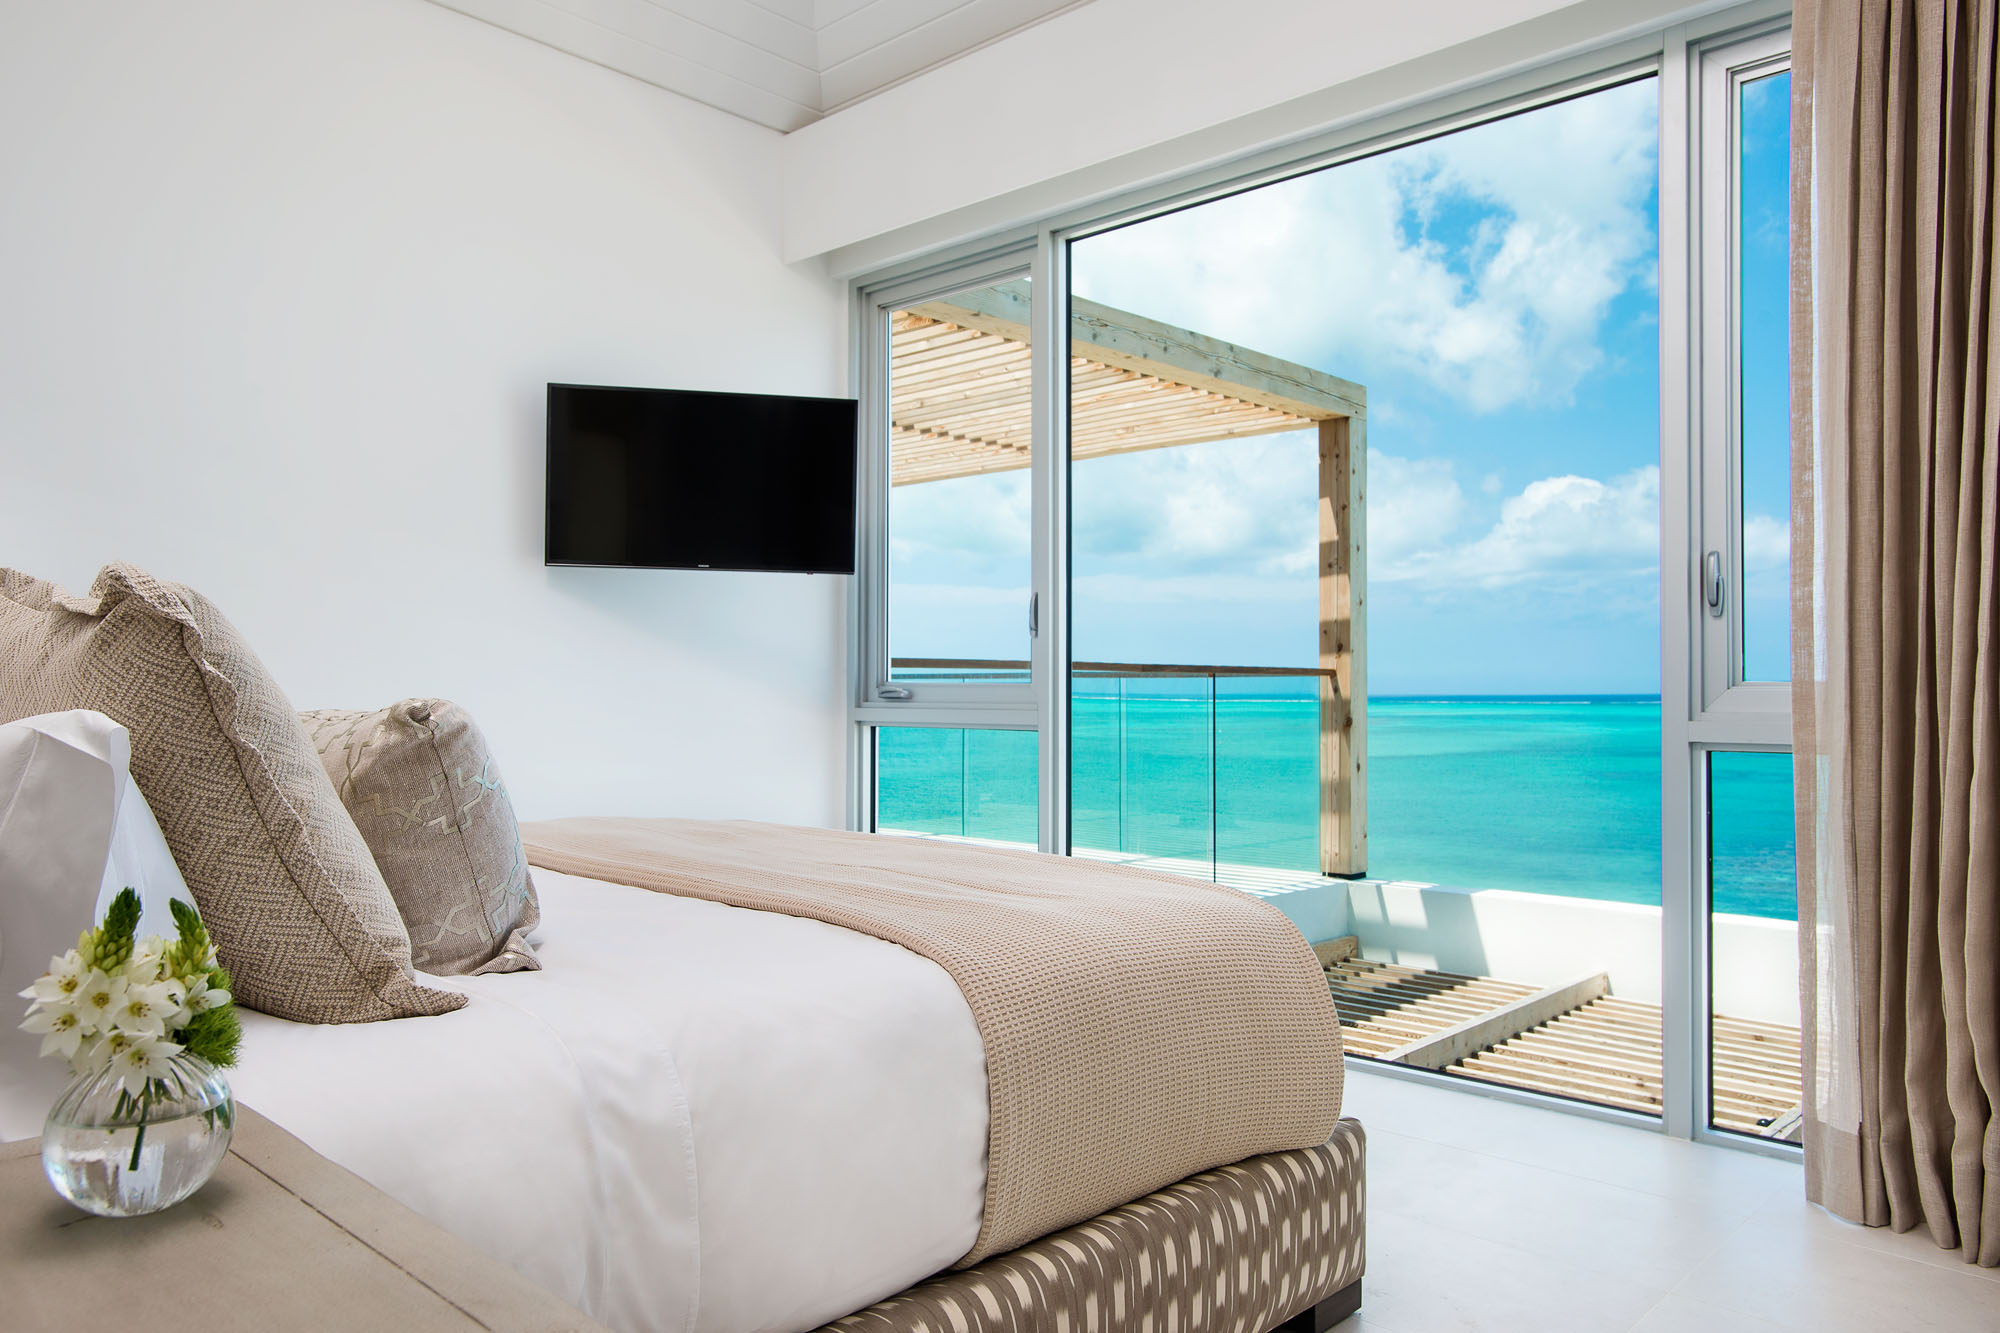 You have the choice between 4 or 5 bedroom beachfront villas at Beach Enclave North Shore, Providenciales (Provo), Turks and Caicos Islands.